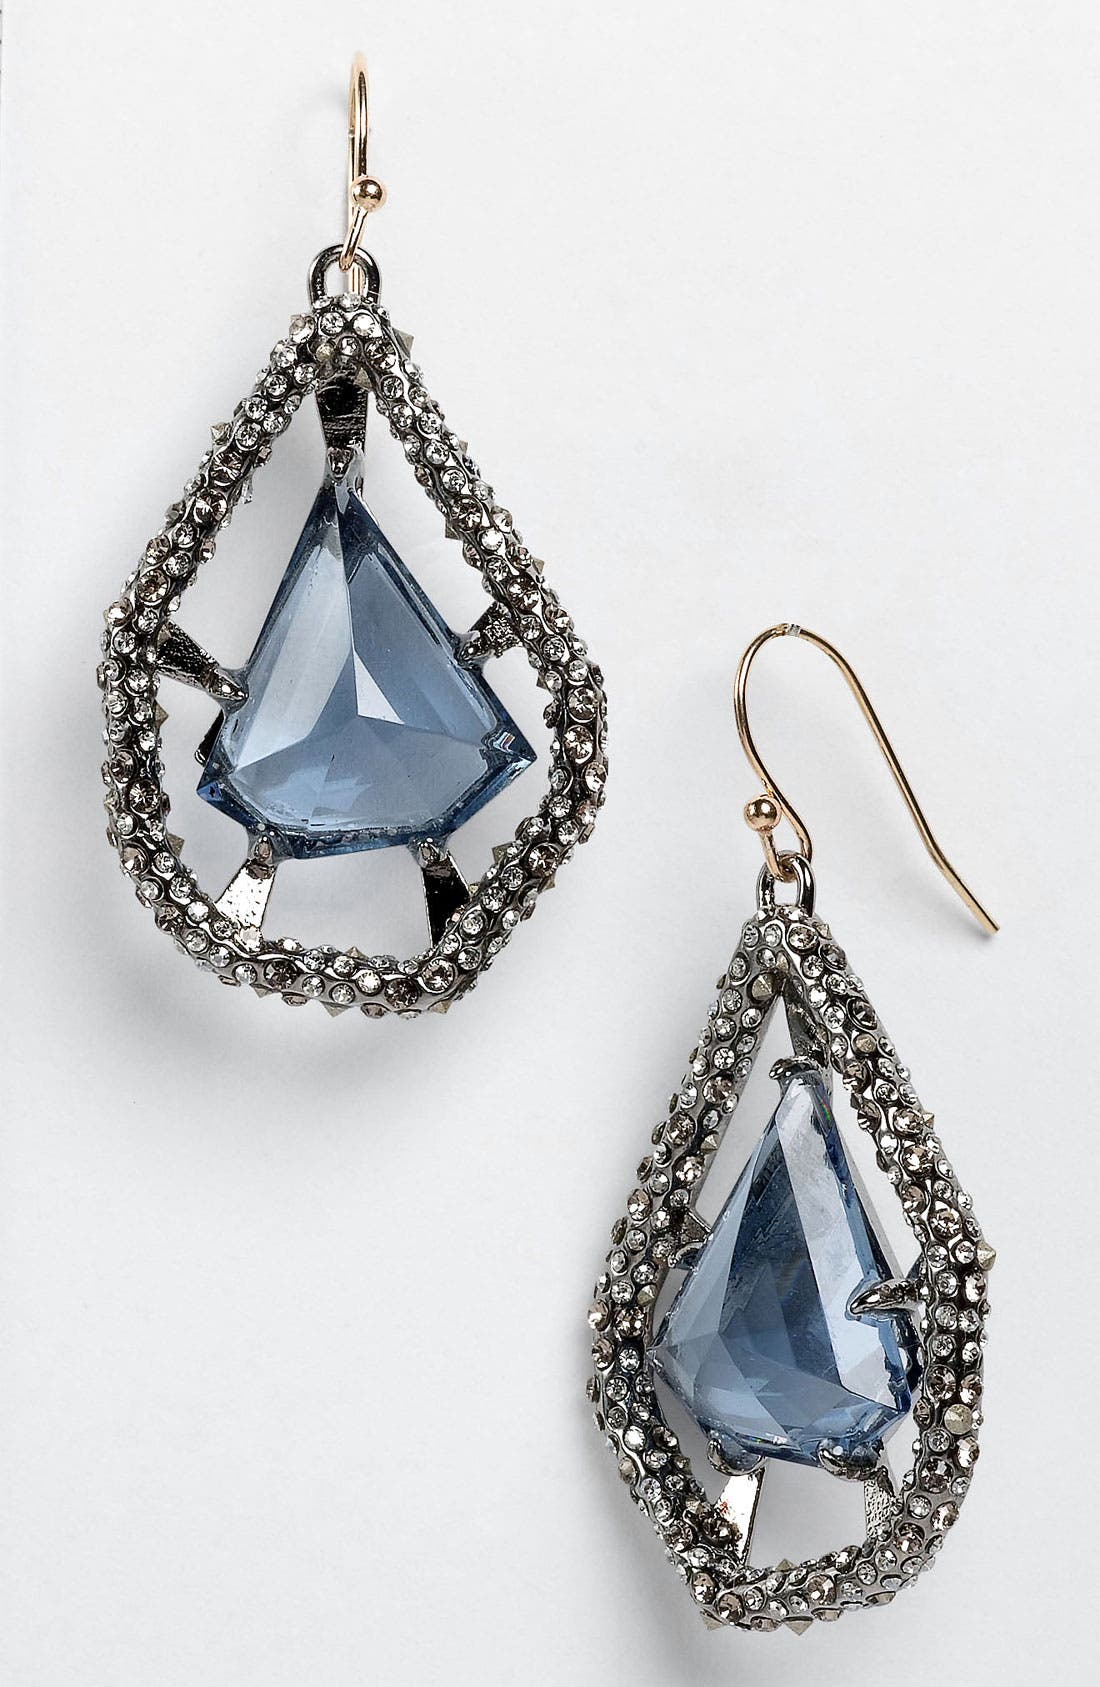 Alternate Image 1 Selected - Alexis Bittar 'Miss Havisham - Deco' Shield Drop Earrings (Nordstrom Exclusive)